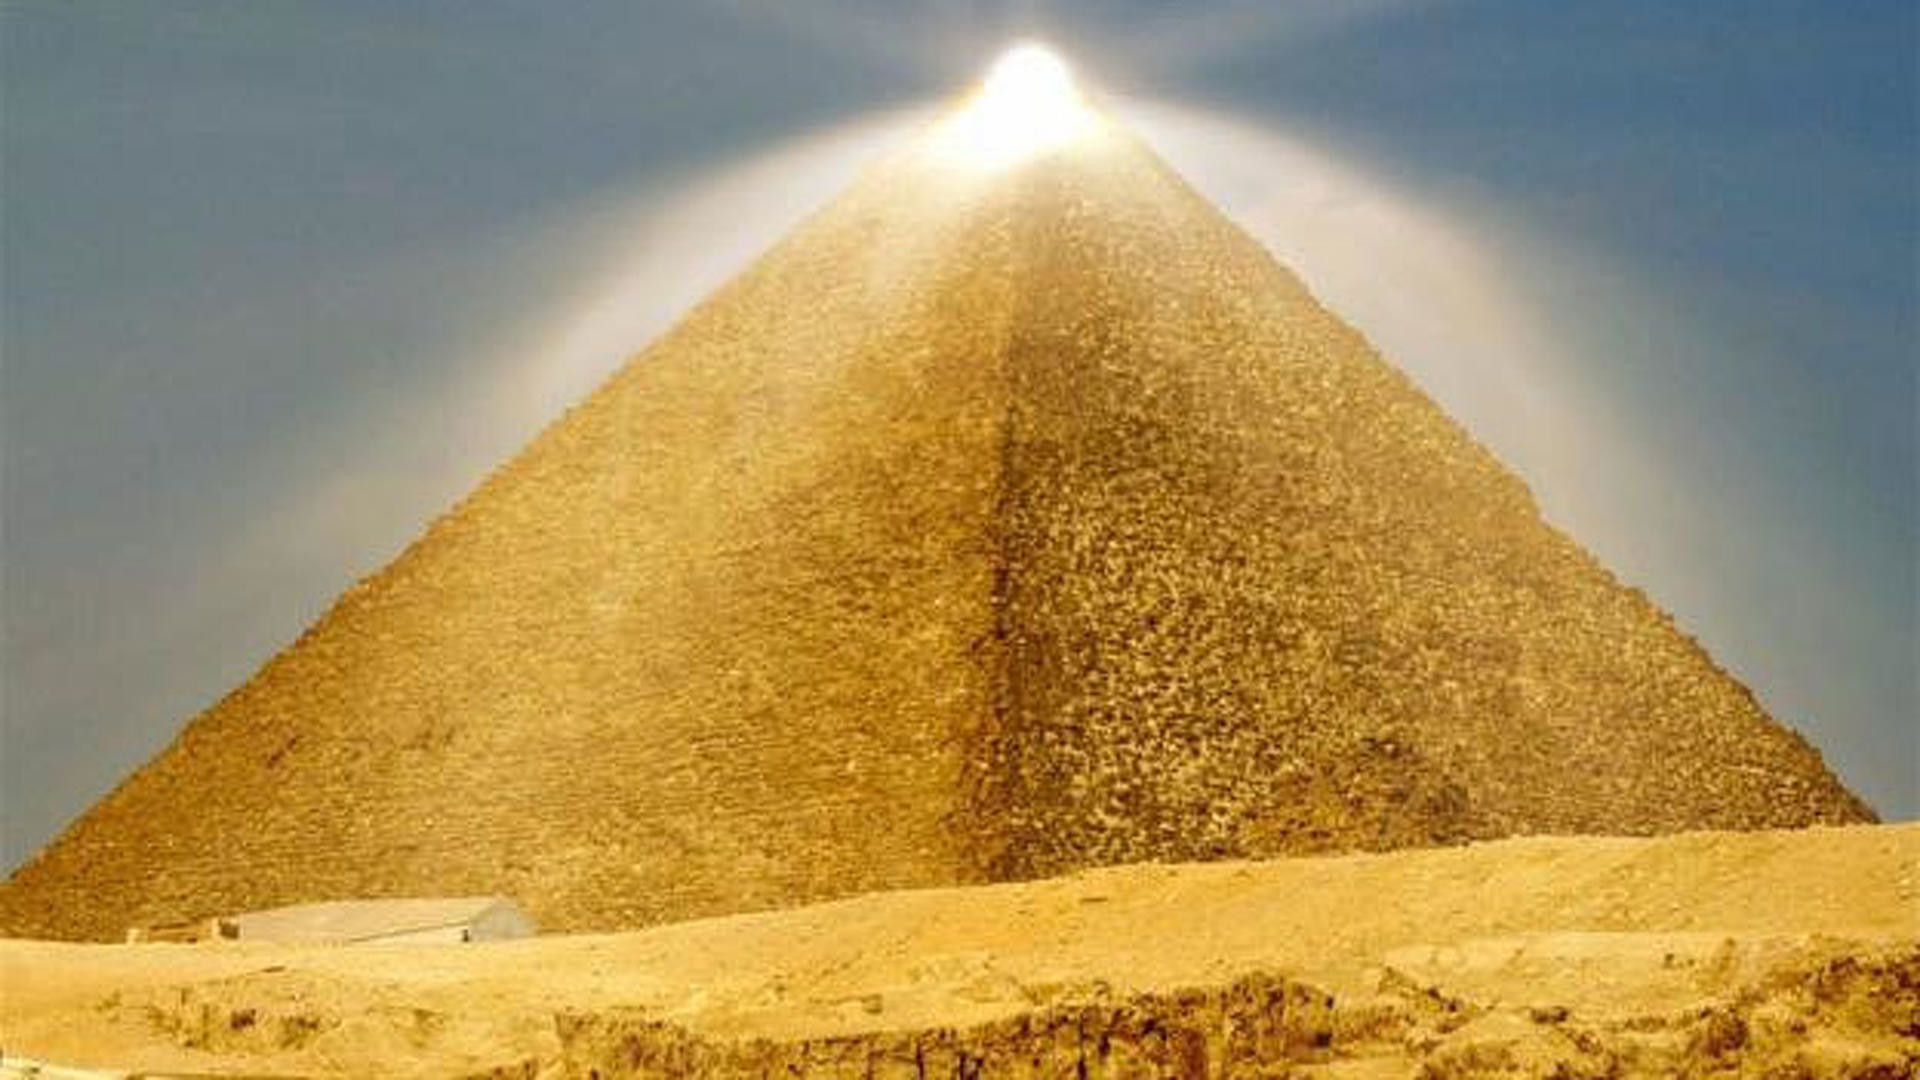 1920x1080 Ancient Aliens (S05E01): Secrets of the Pyramids Summary - Season 5 Episode  1 Guide